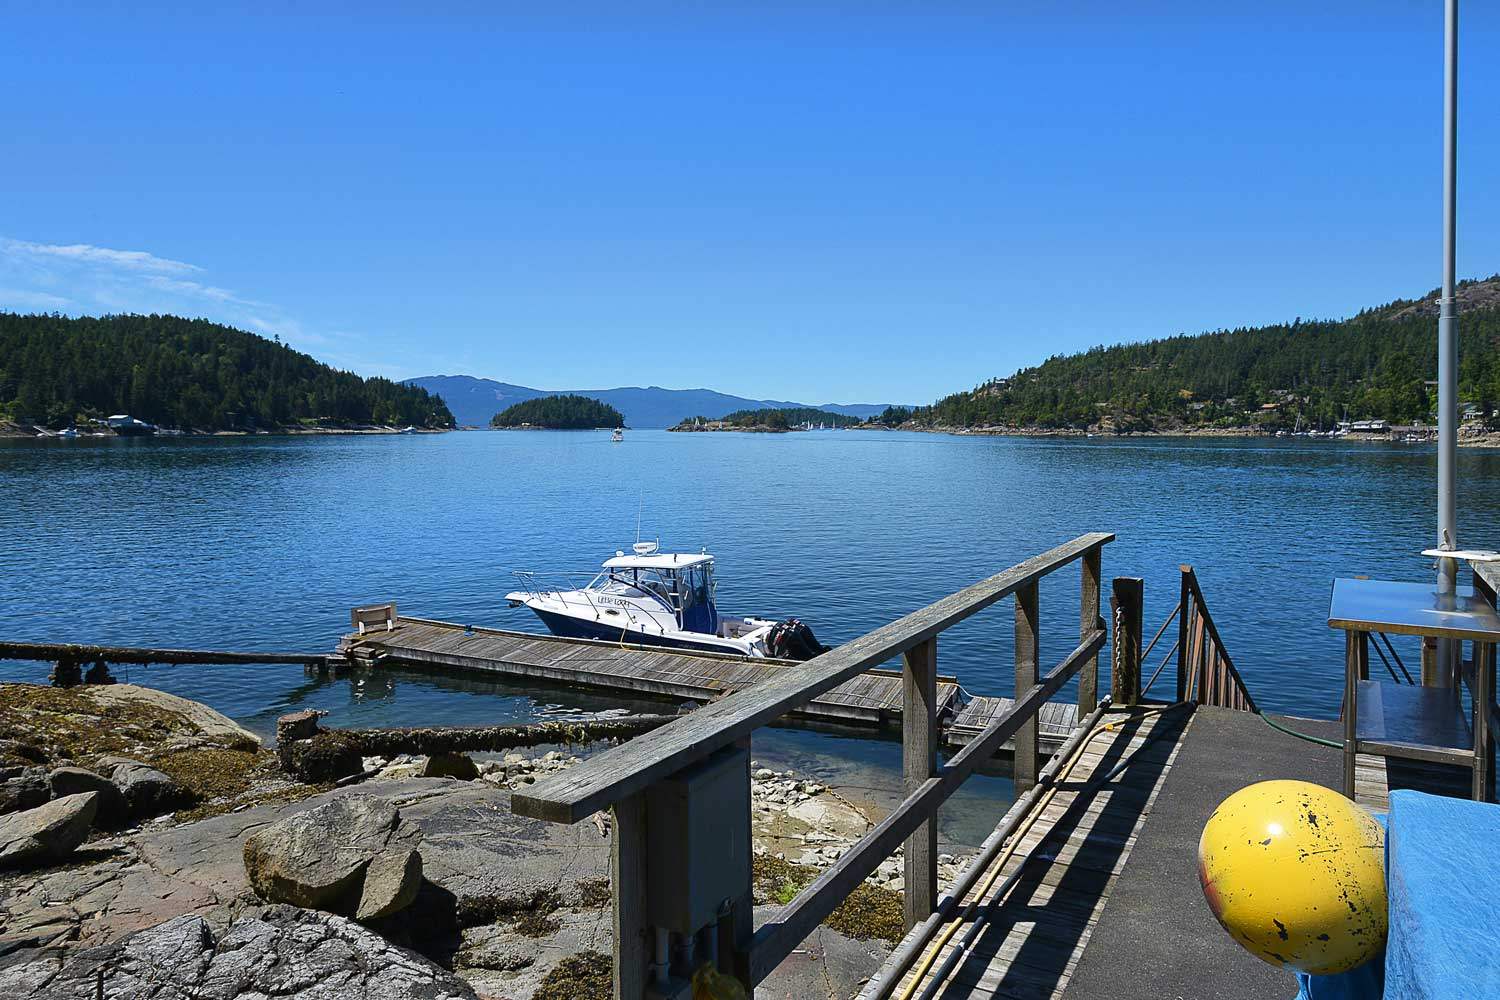 A single boat is moored at a private dock on the Pender Harbour. The dock is for guests at the luxury vacation House 63.